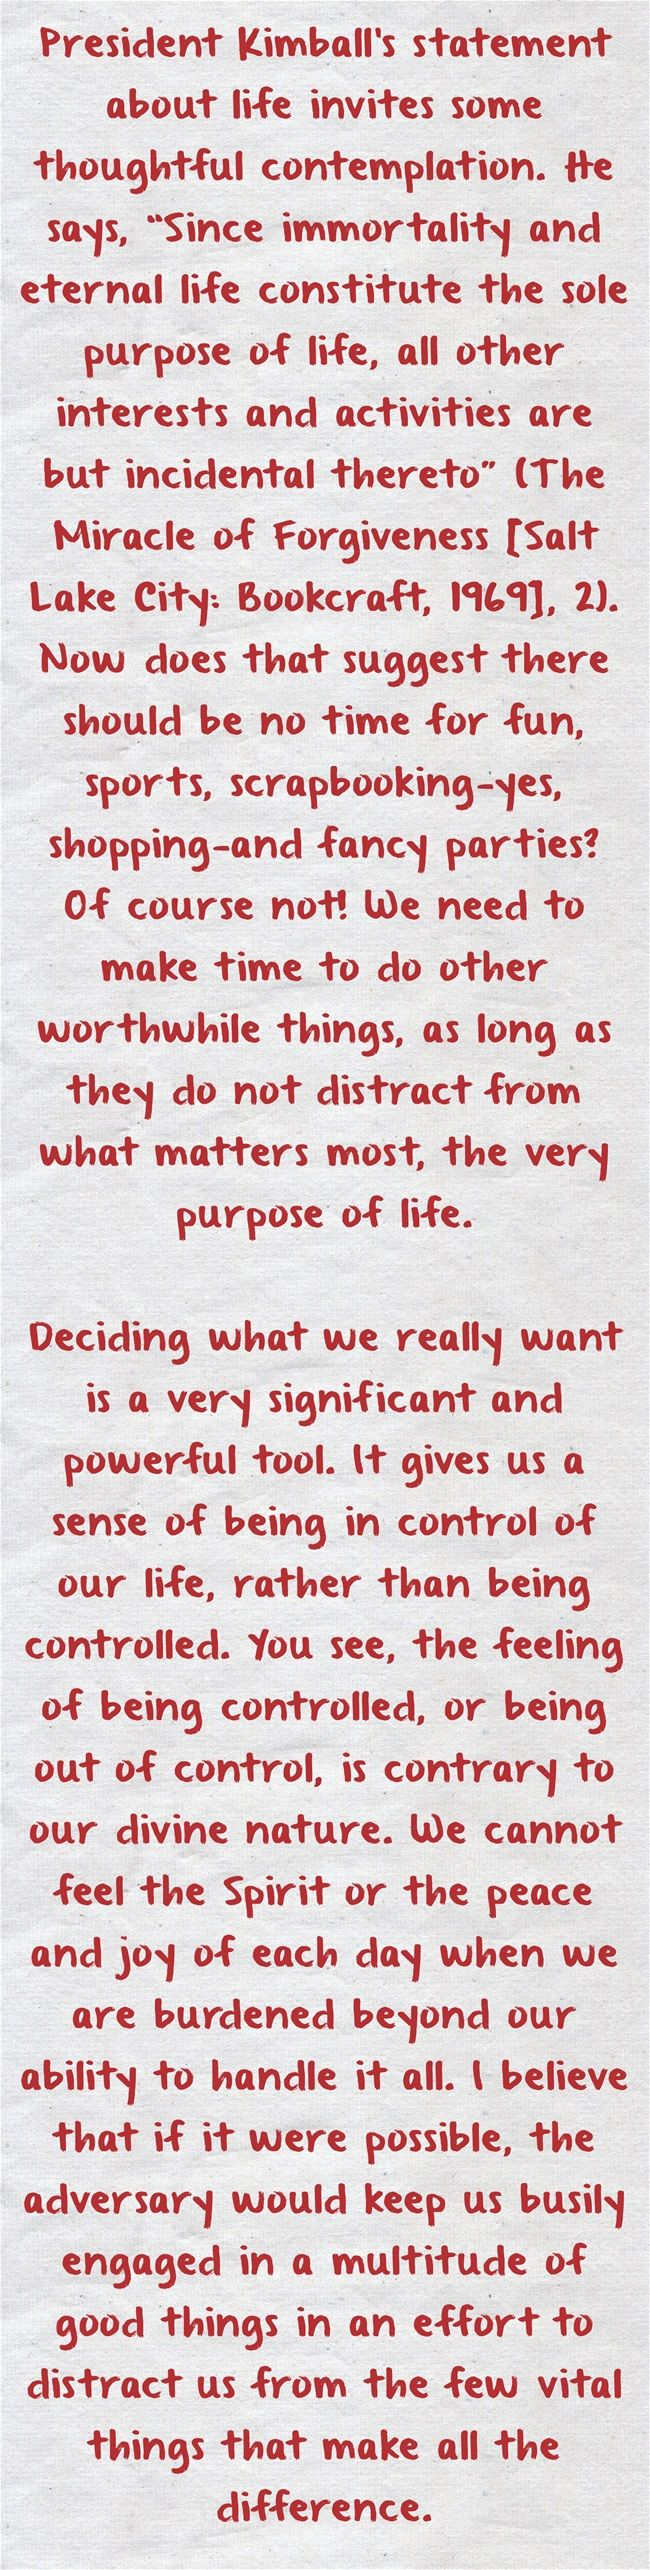 "President Kimball's statement about life invites some thoughtful contemplation. He says, ""Since immortality and eternal life constitute the sole purpose of life, all other interests and activities are but incidental thereto"" (The Miracle of Forgiveness [Salt Lake City: Bookcraft, 1969], 2). Now does that suggest there should be no time for fun, sports, scrapbooking—yes, shopping—and fancy parties? Of course not! We need to make time to do other worthwhile things, as long as..."